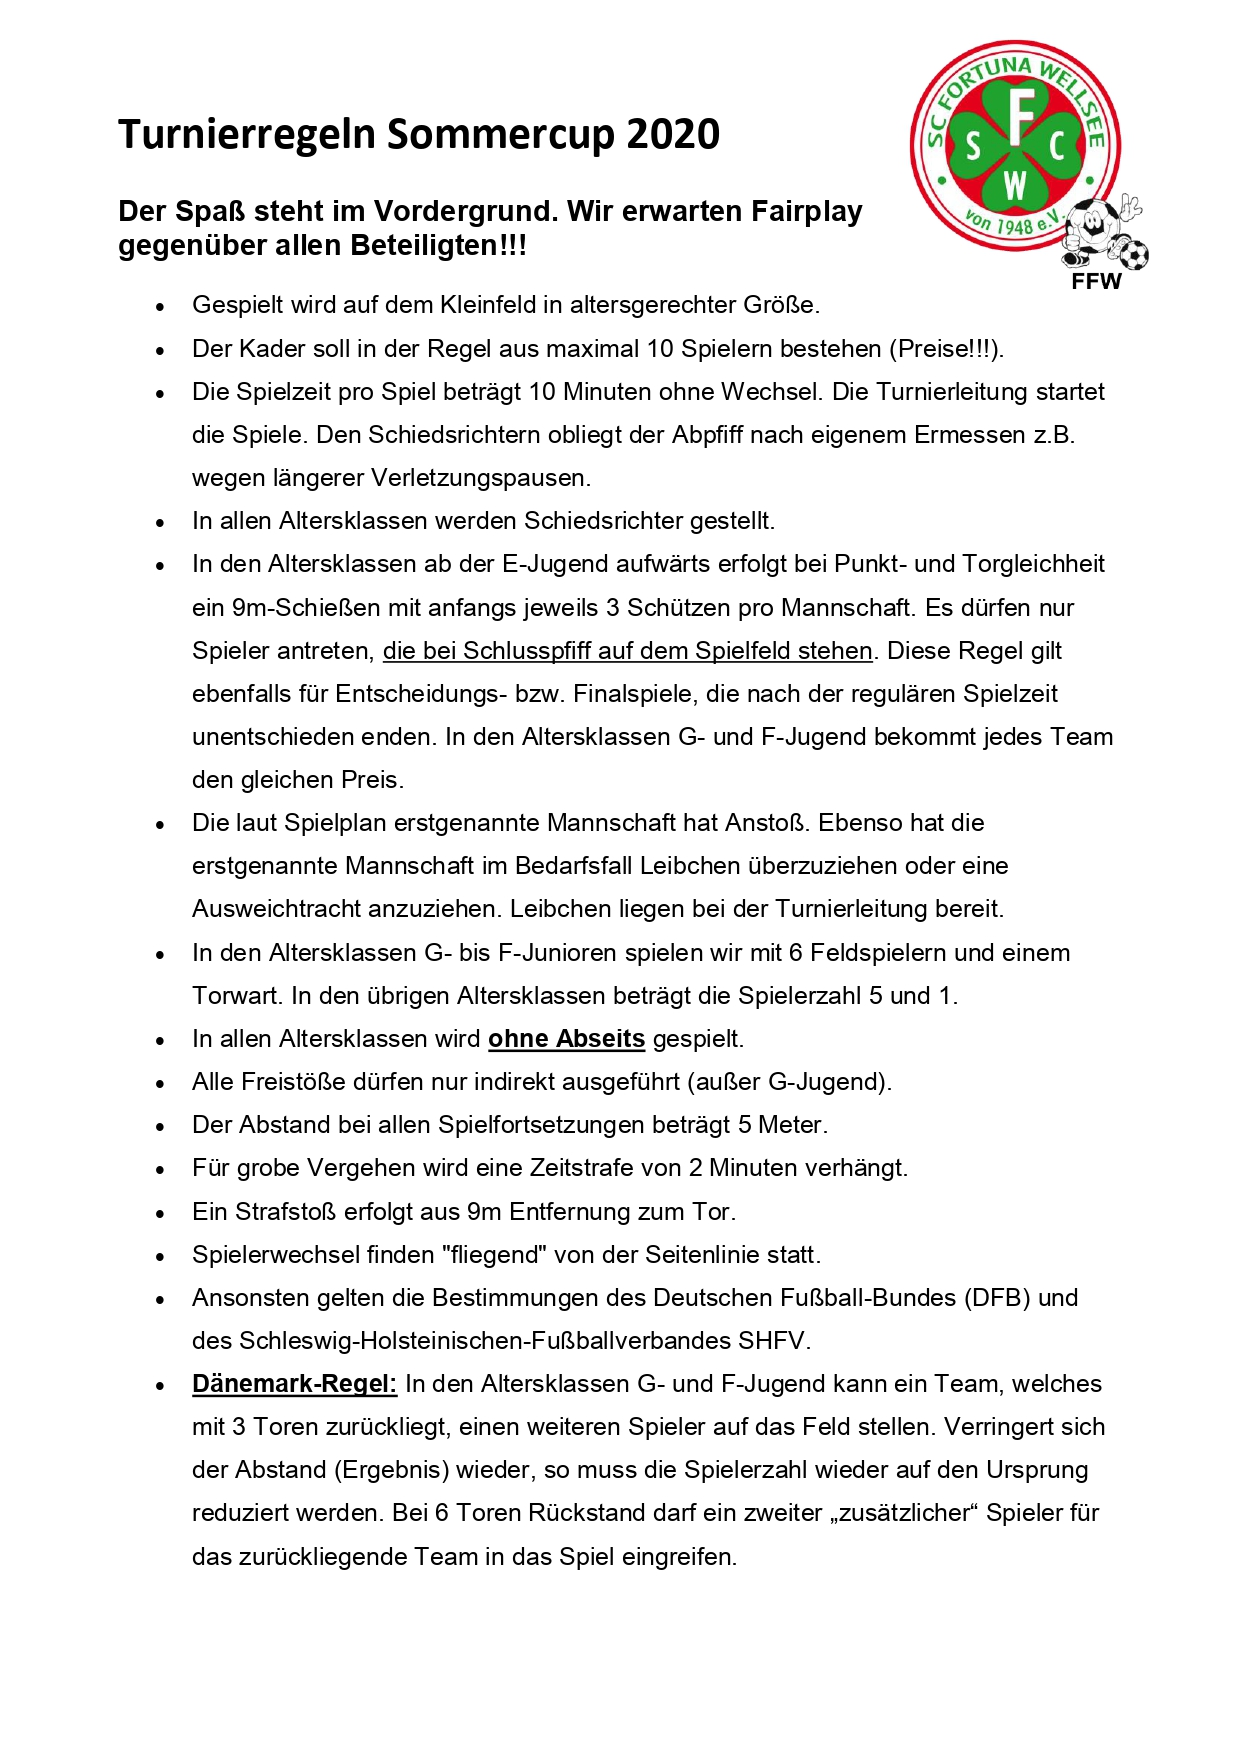 Turnierregeln Sommercup 2020 page 0001